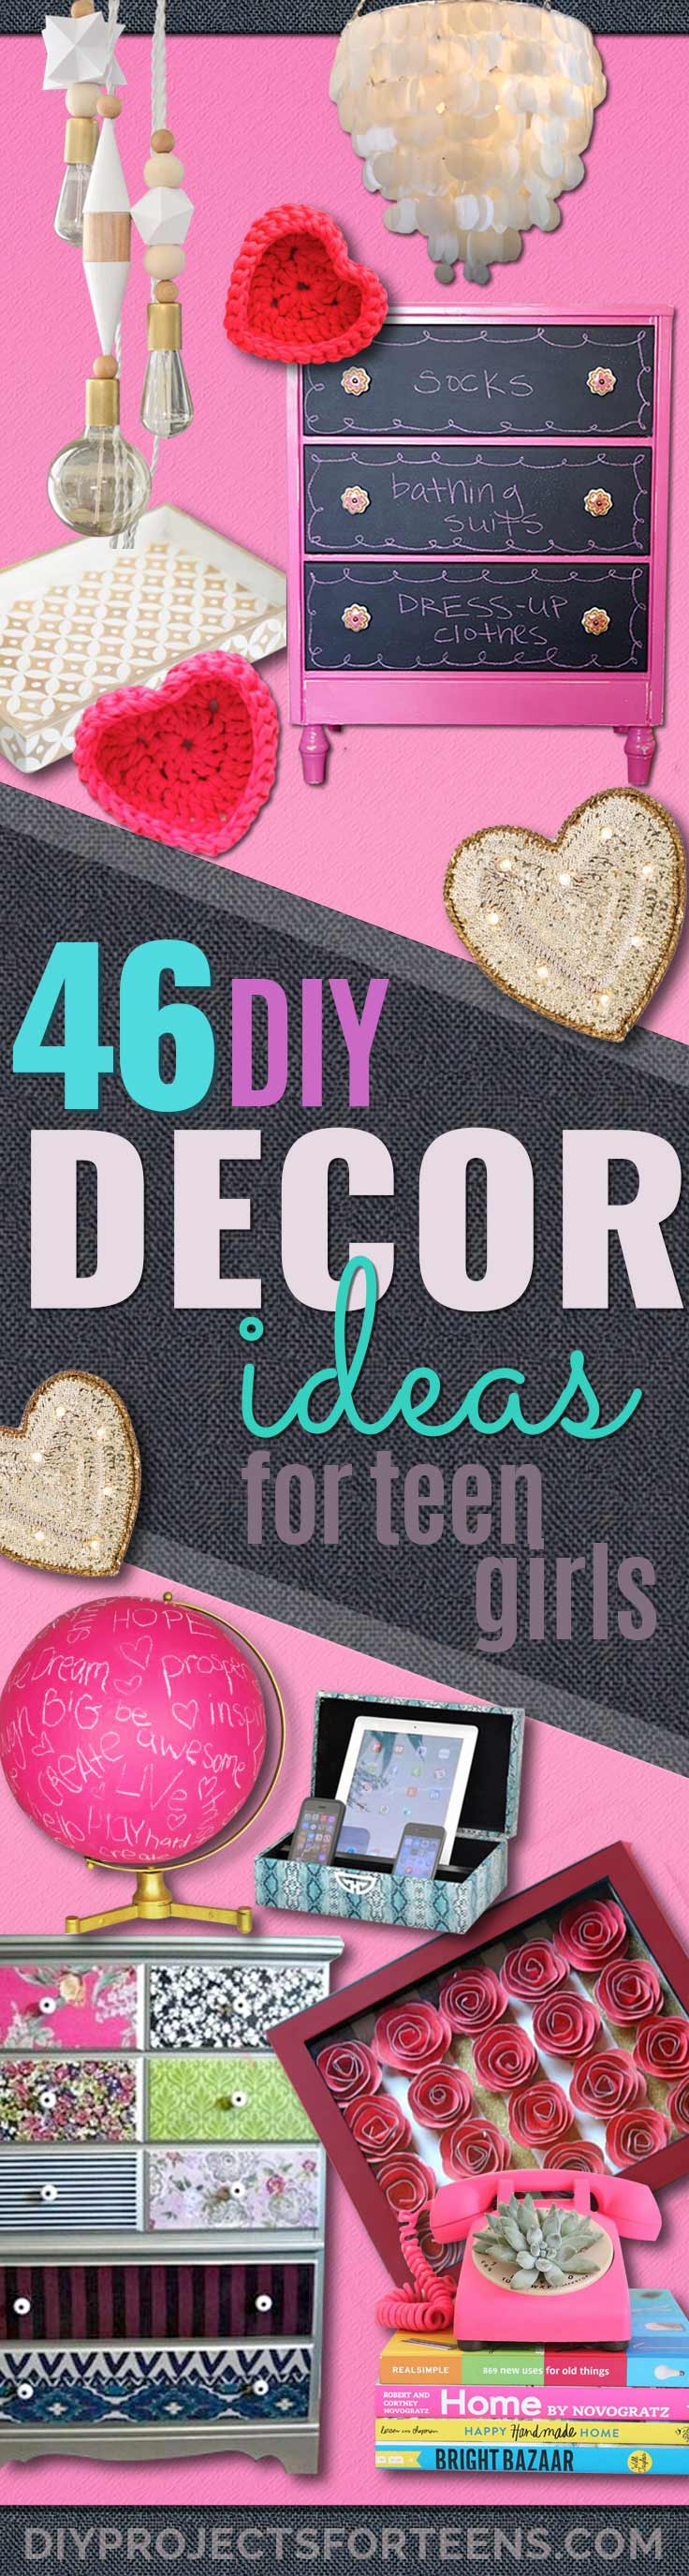 Bedroom ideas for teenage girls 2016 - Diy Teen Room Decor Ideas For Girls Fun Crafts And Decor For Tweens Cool